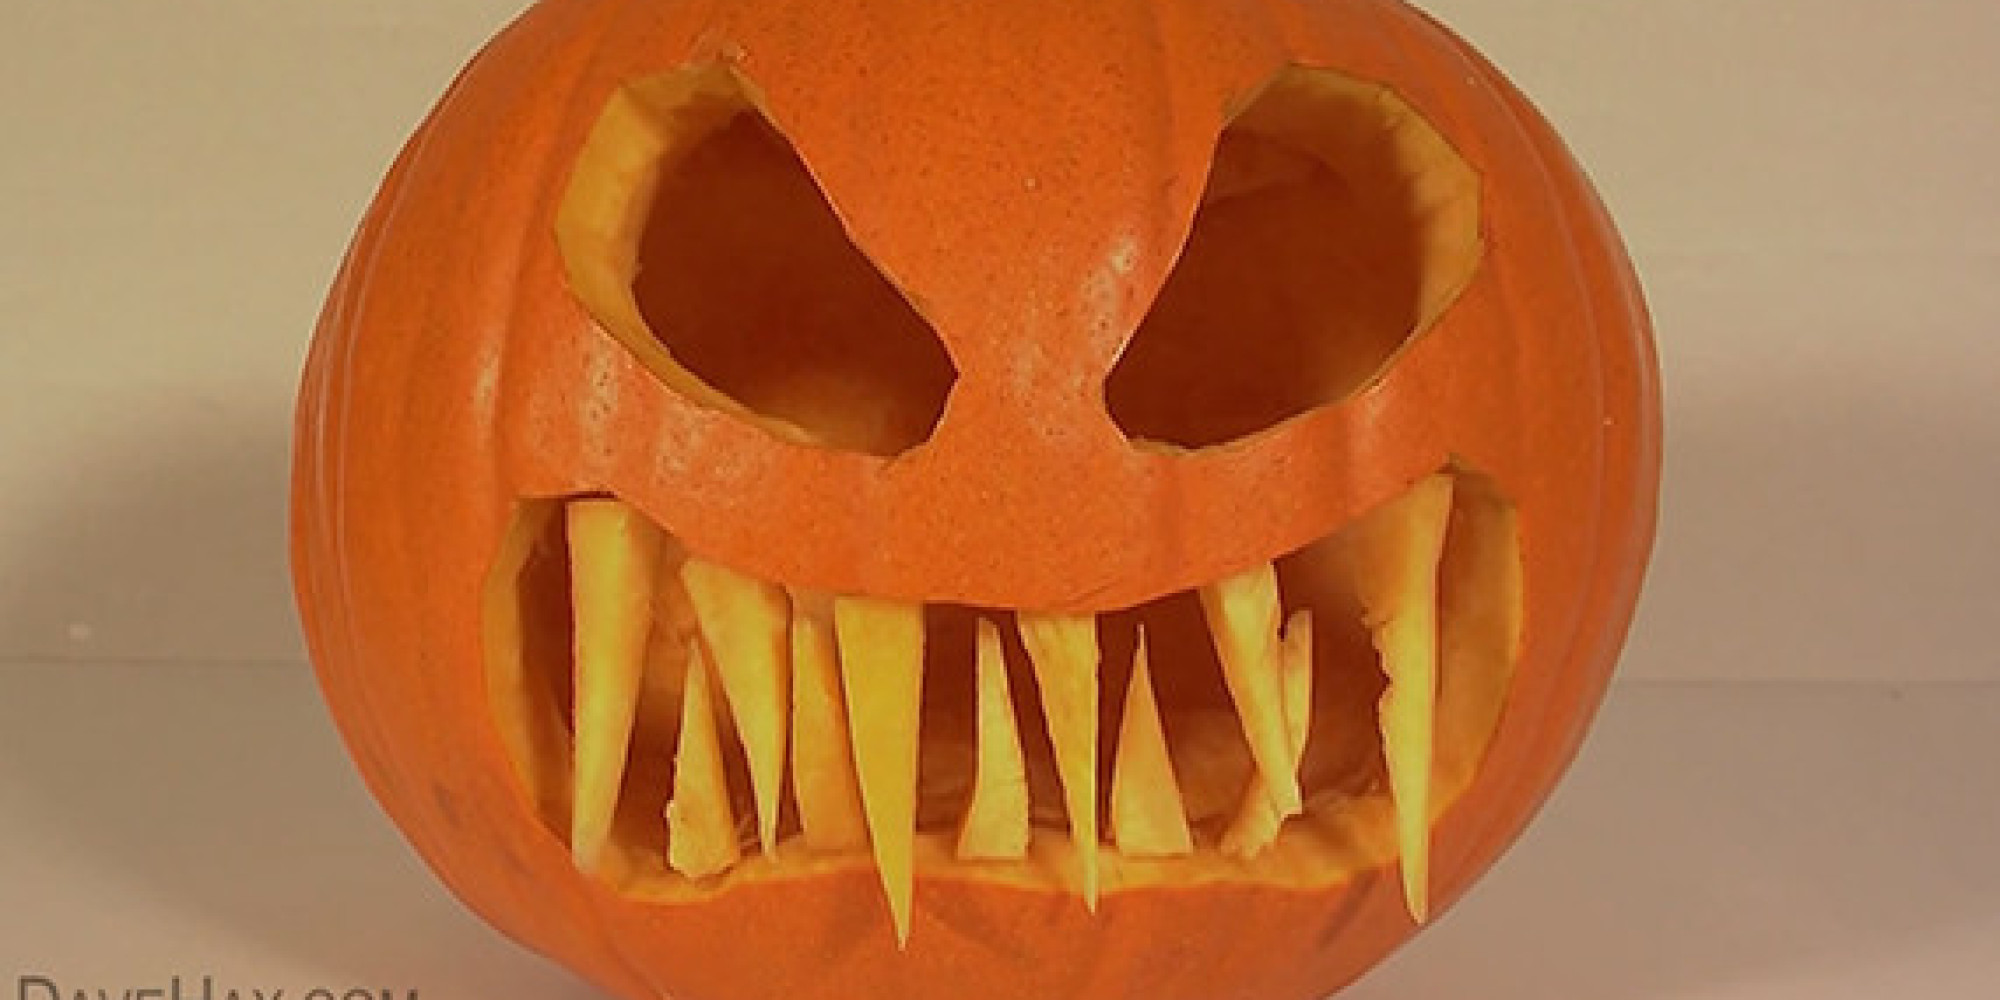 How To Make Amazing Halloween Pumpkins This Year (VIDEO) | HuffPost